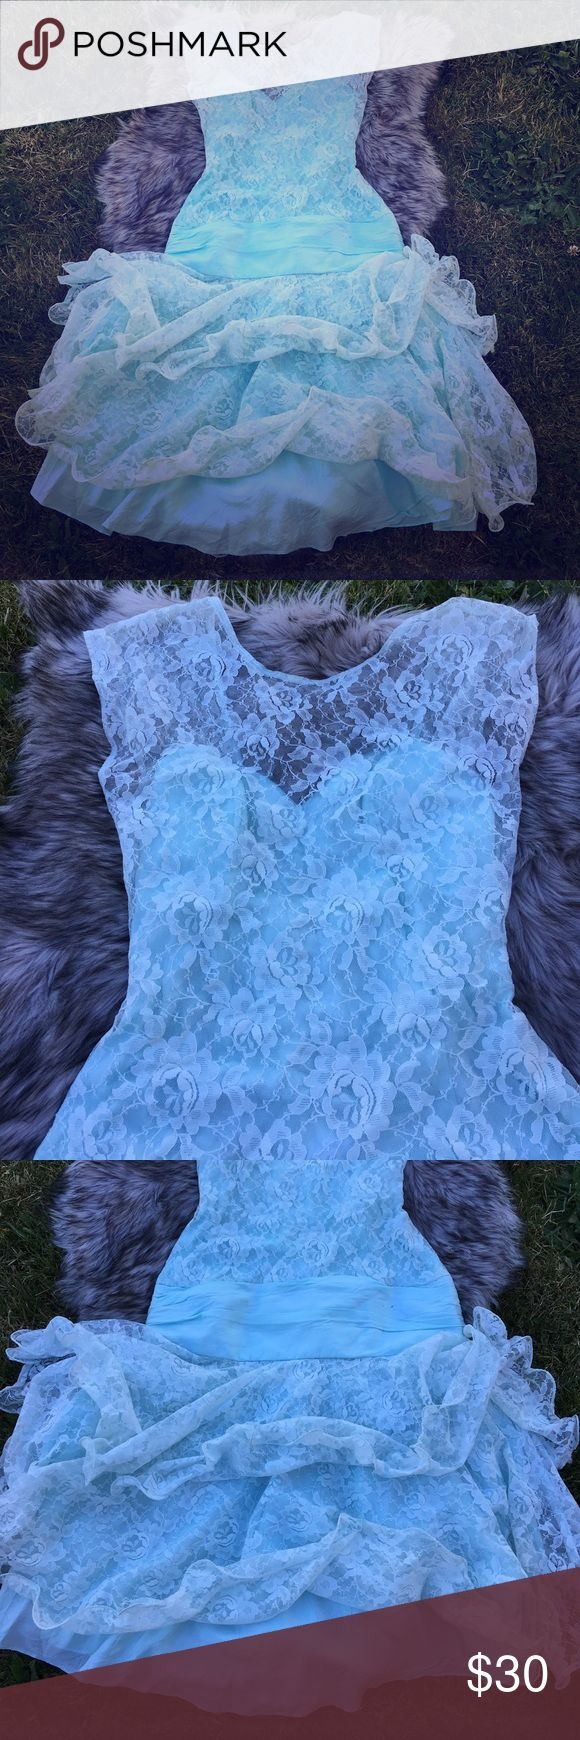 Sweet waters of sea 🌊 foam and sultry lace 👗 From a princess in a dream to your wardrobe, I present the most feminine and fair 👗.... it's just lovely as a lush plush fantasy.  Vintage. eletra Dresses Prom